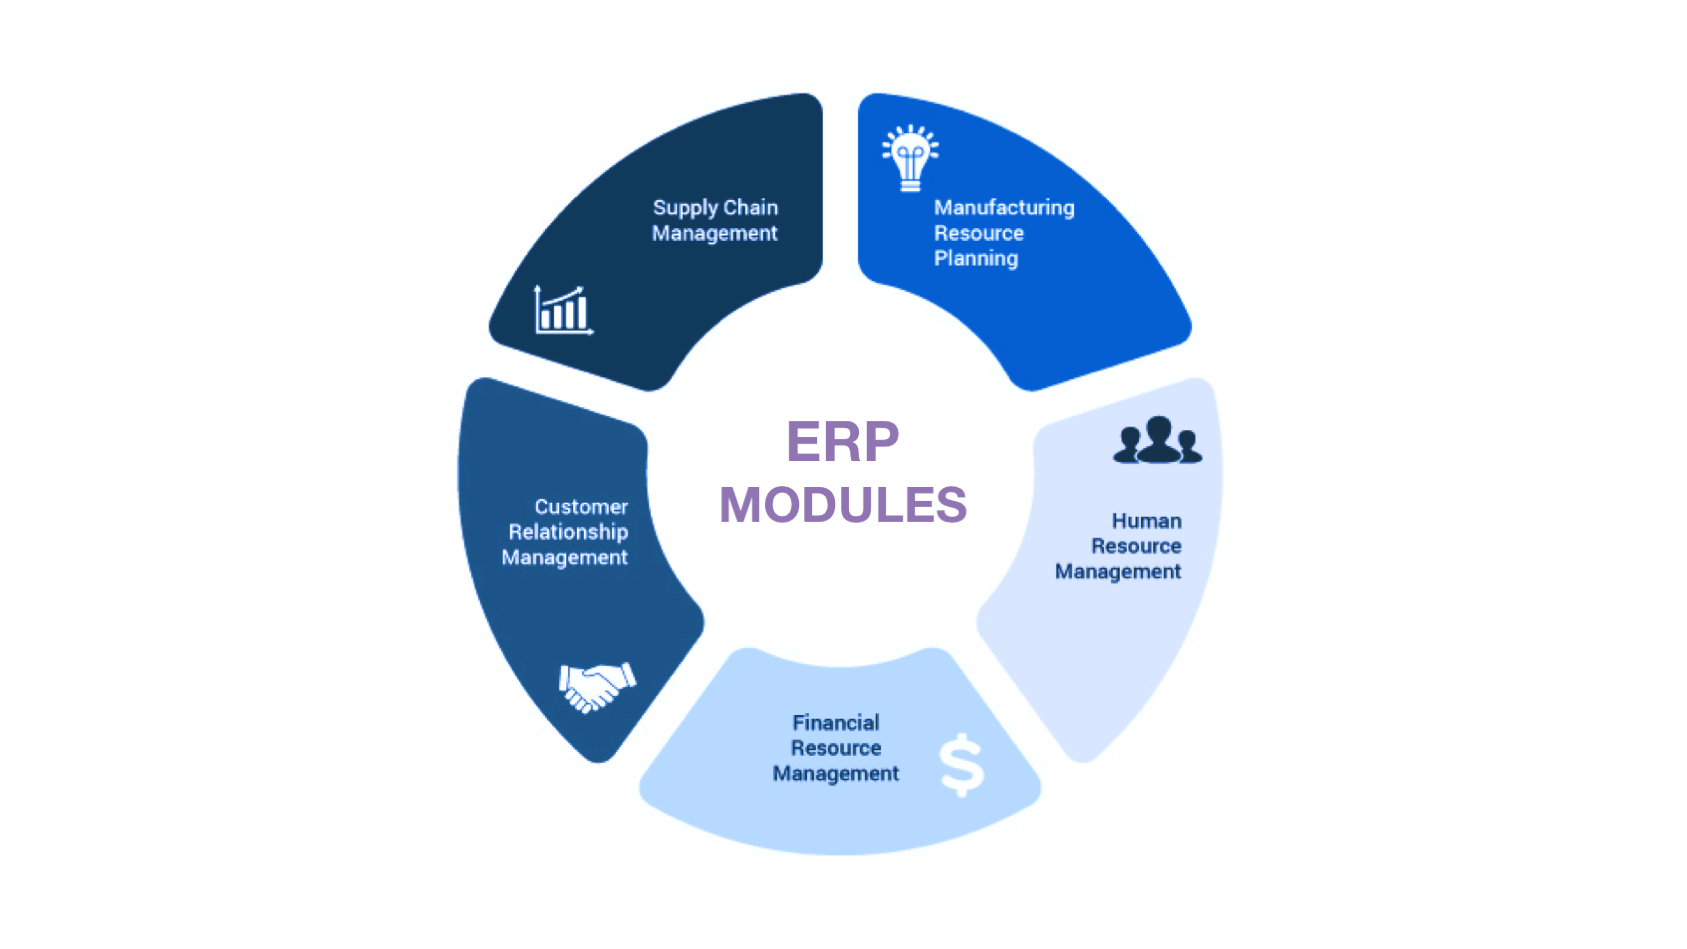 How to Build An ERP From Scratch: Technologies, Flow, Cost